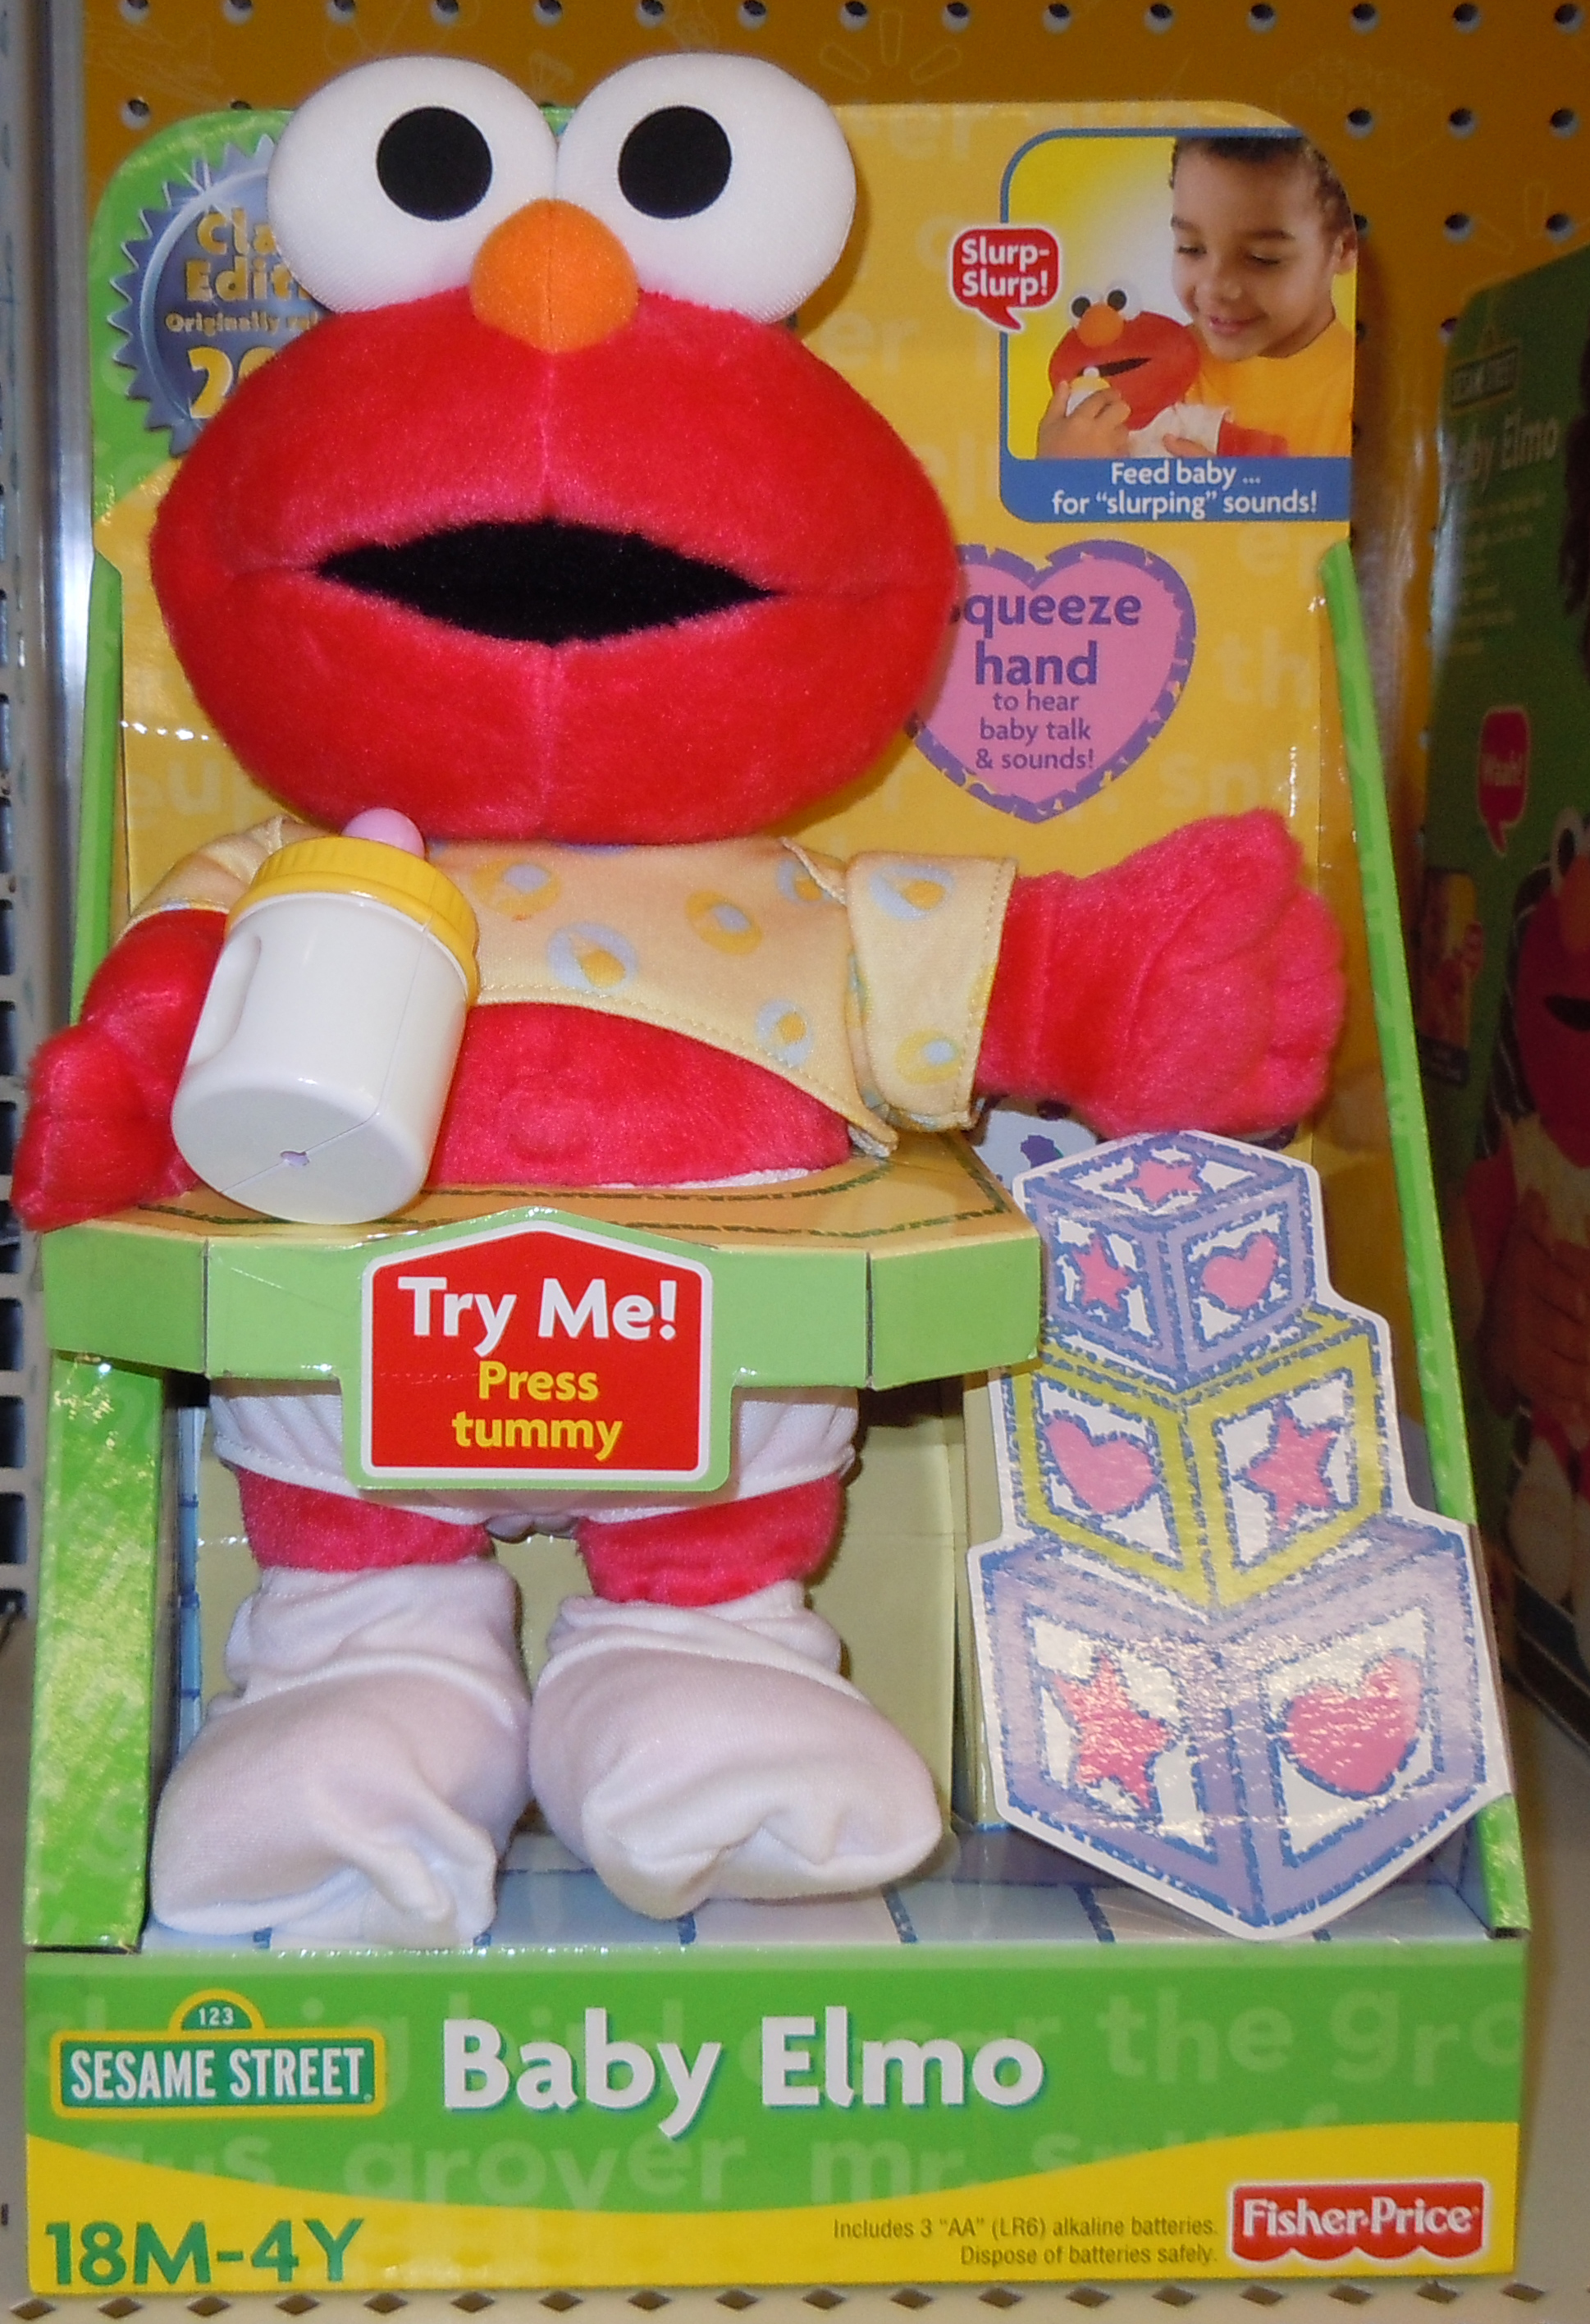 Fisher-Price In Box Pic of the Re-Release of Baby Elmo